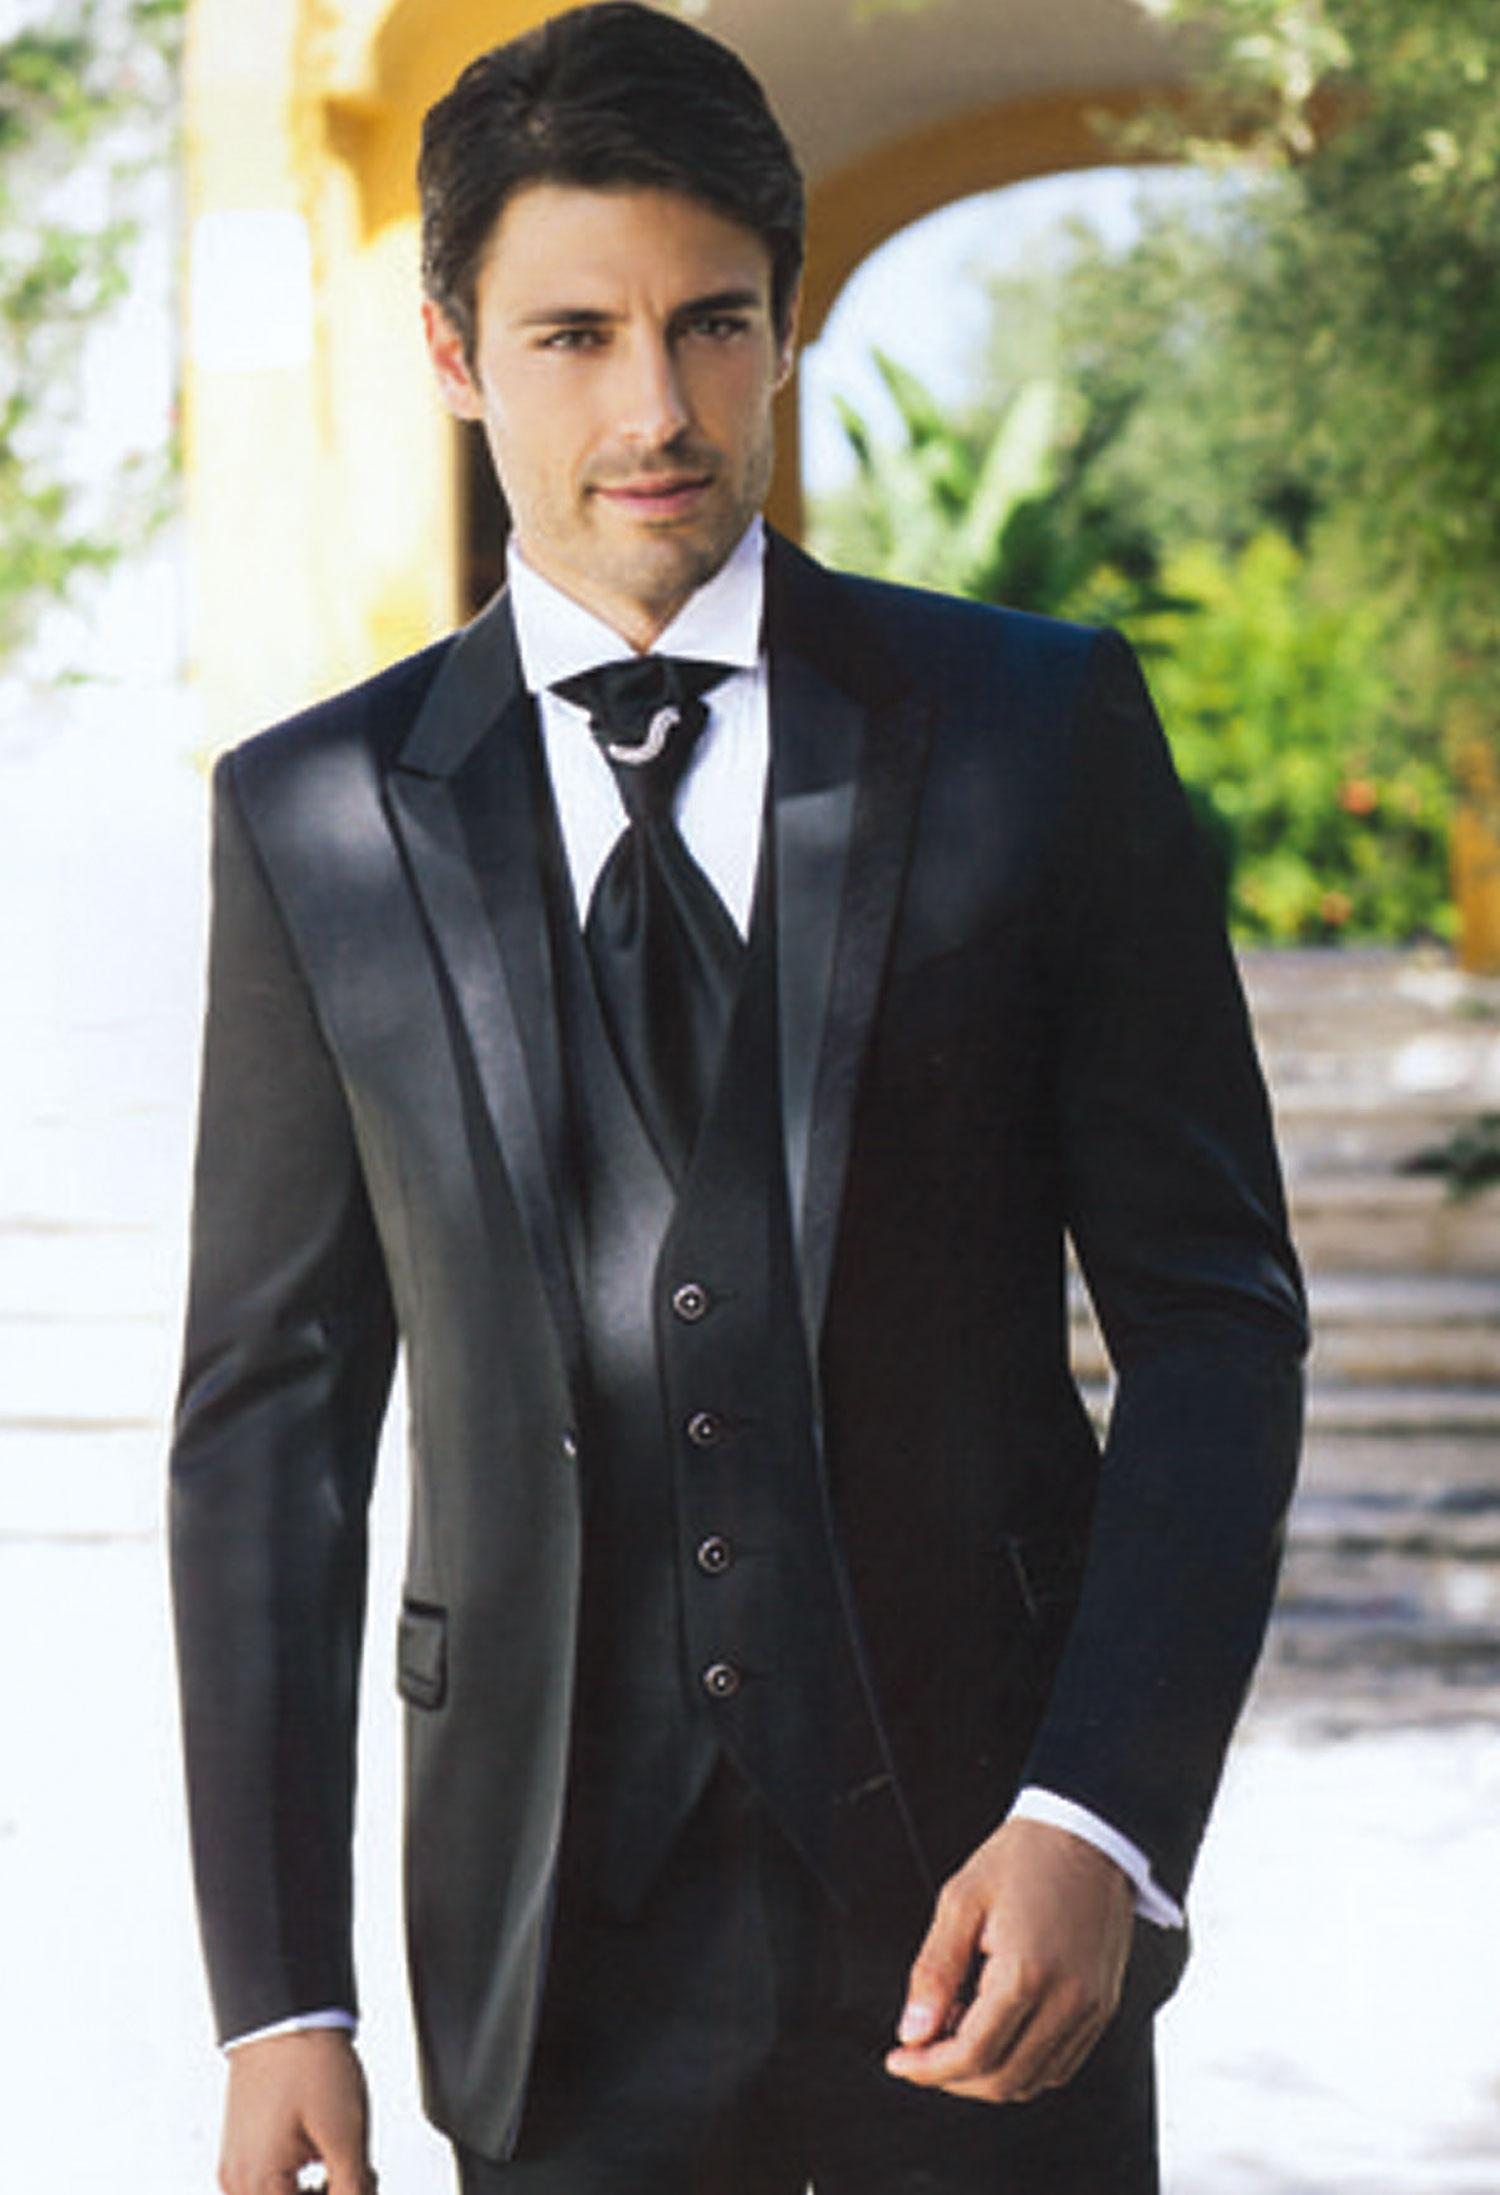 Where to Buy Plaid Mens Formal Suits Online? Where Can I Buy Plaid